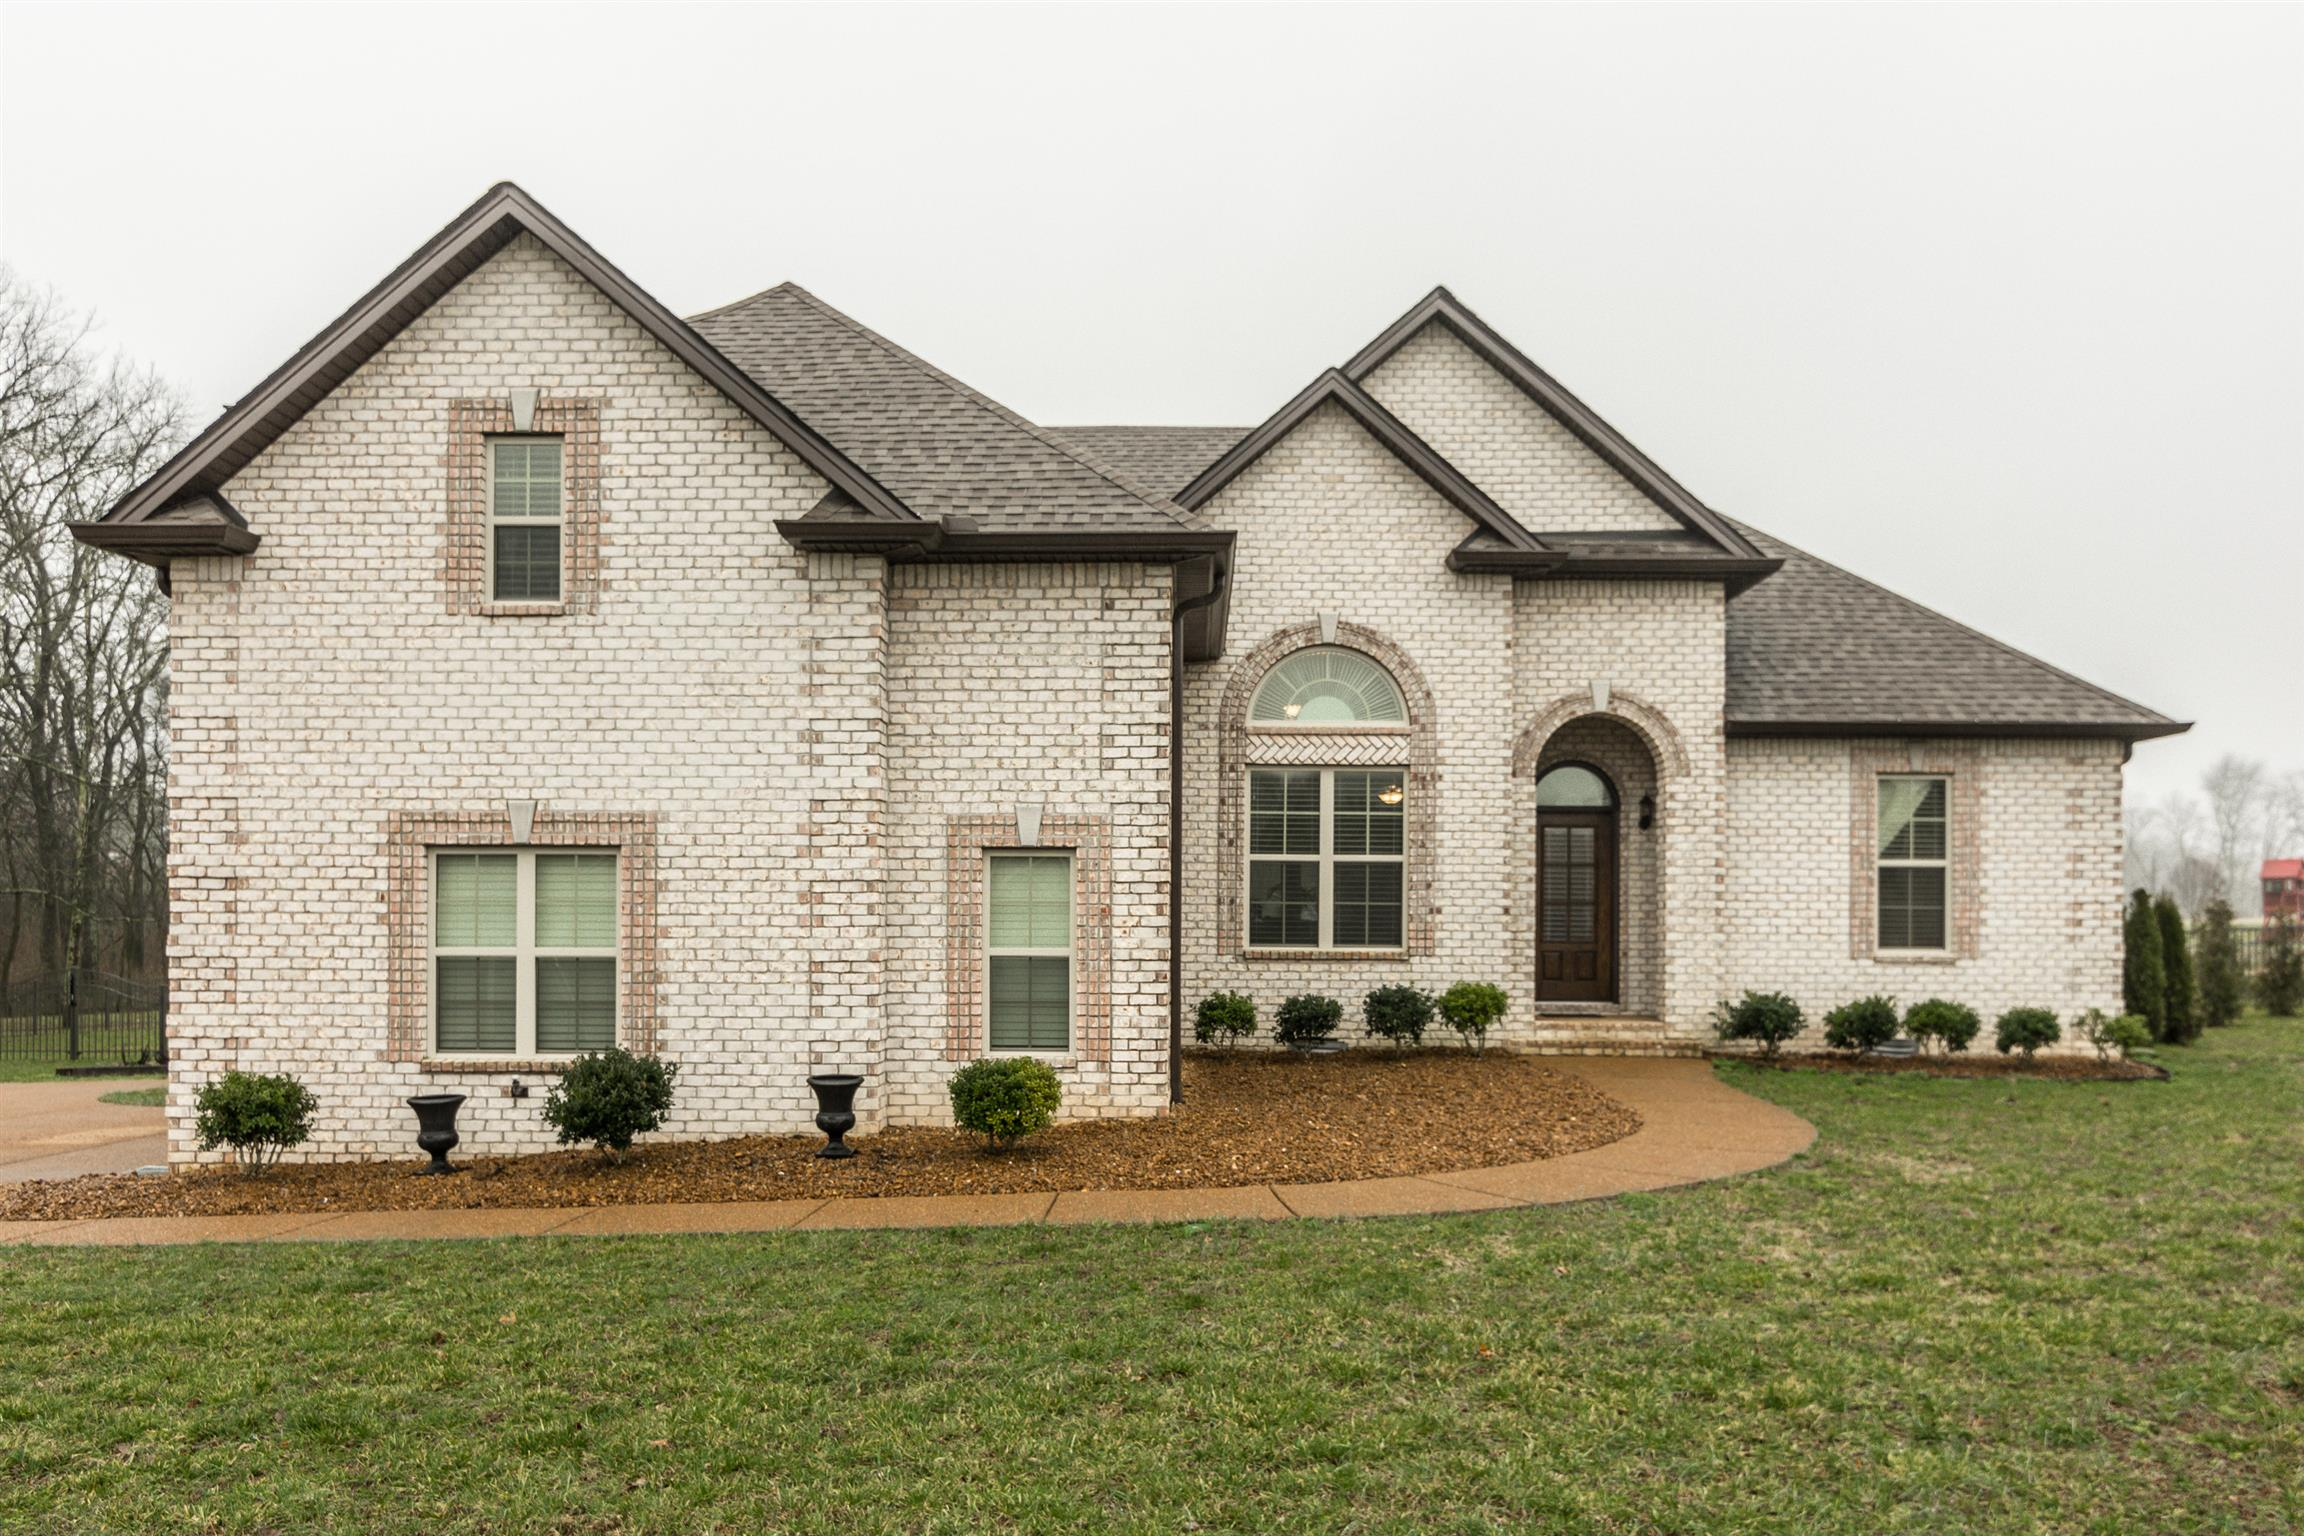 1017 Robert Lee Dr 37066 - One of Gallatin Homes for Sale